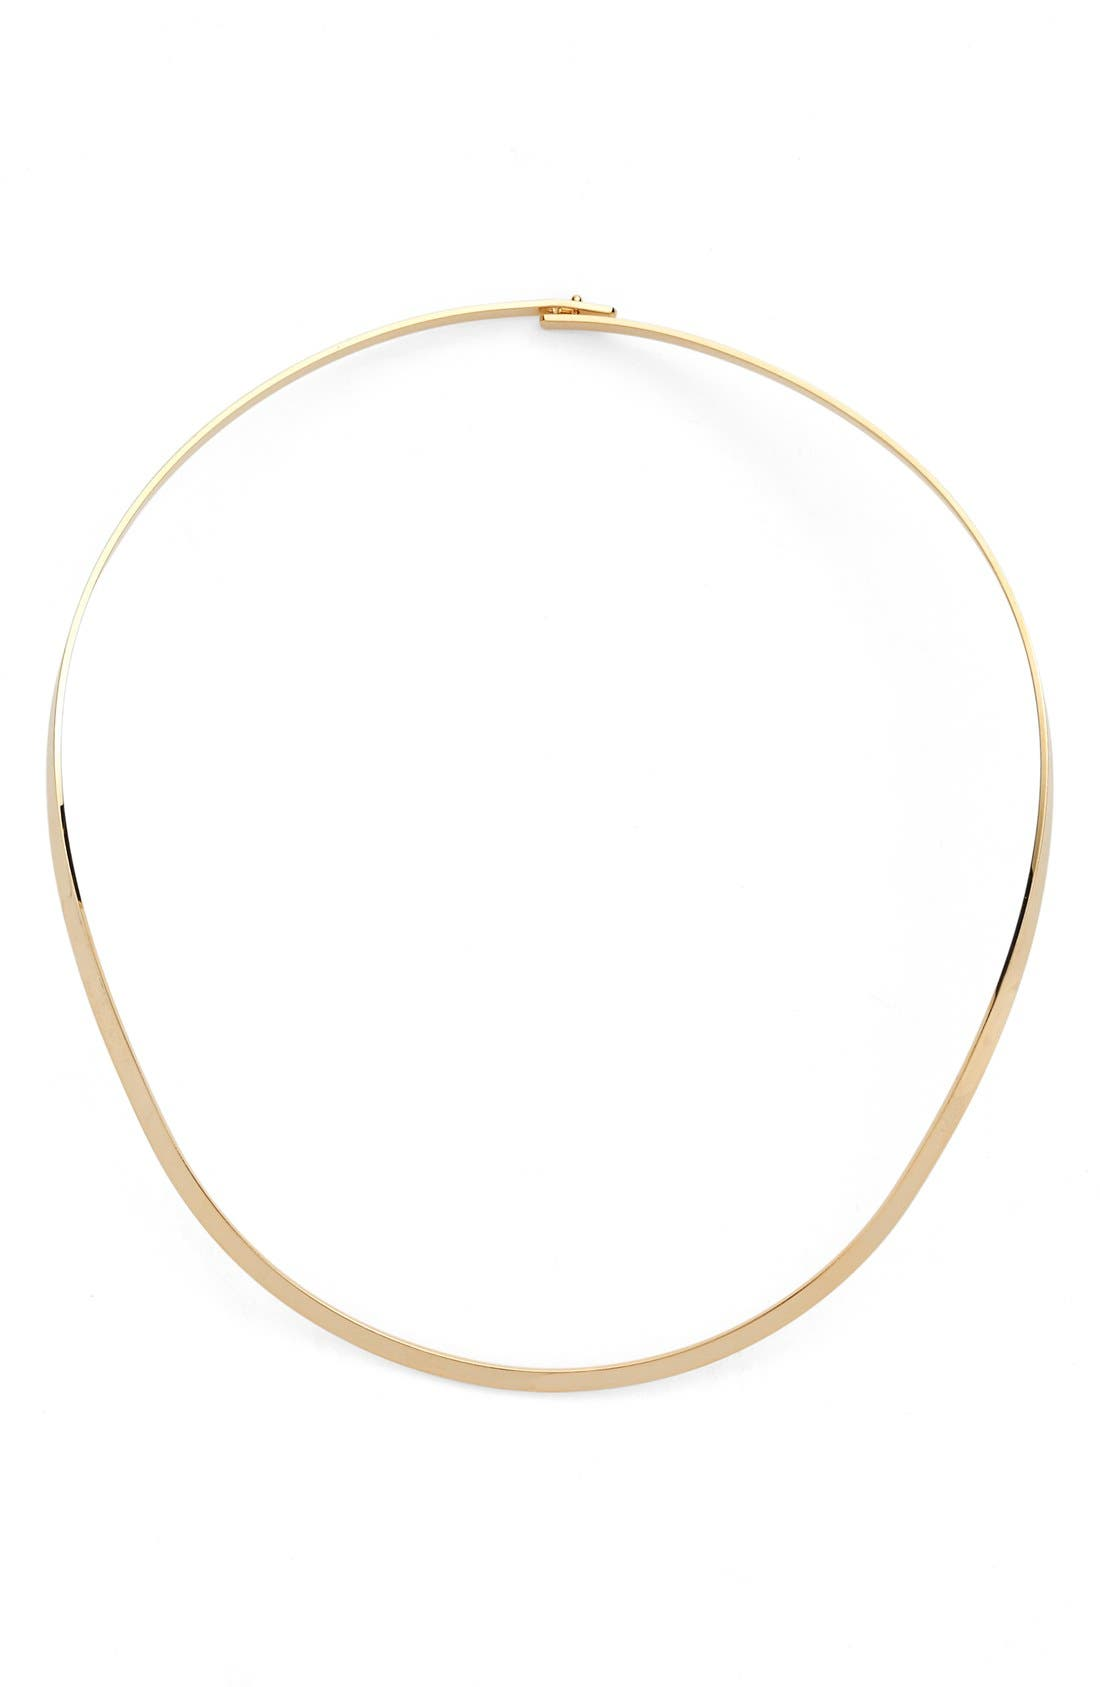 Main Image - Nordstrom Collar Necklace